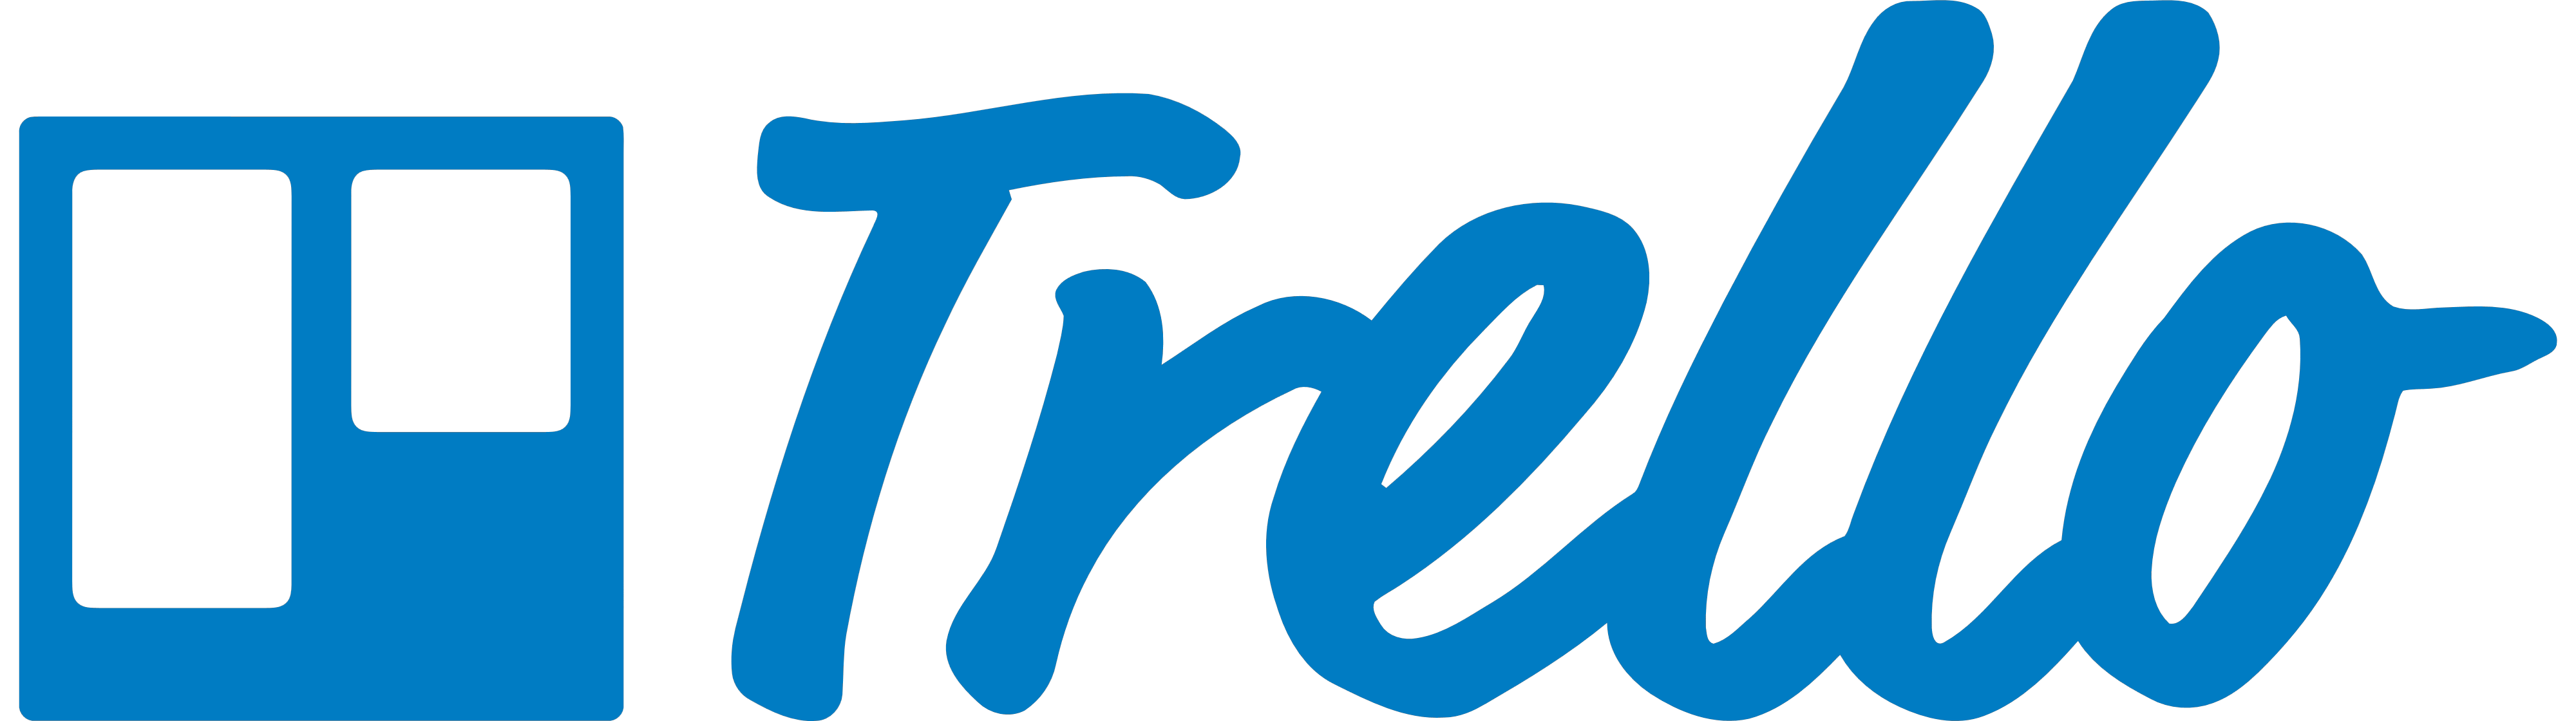 trello online project management platform